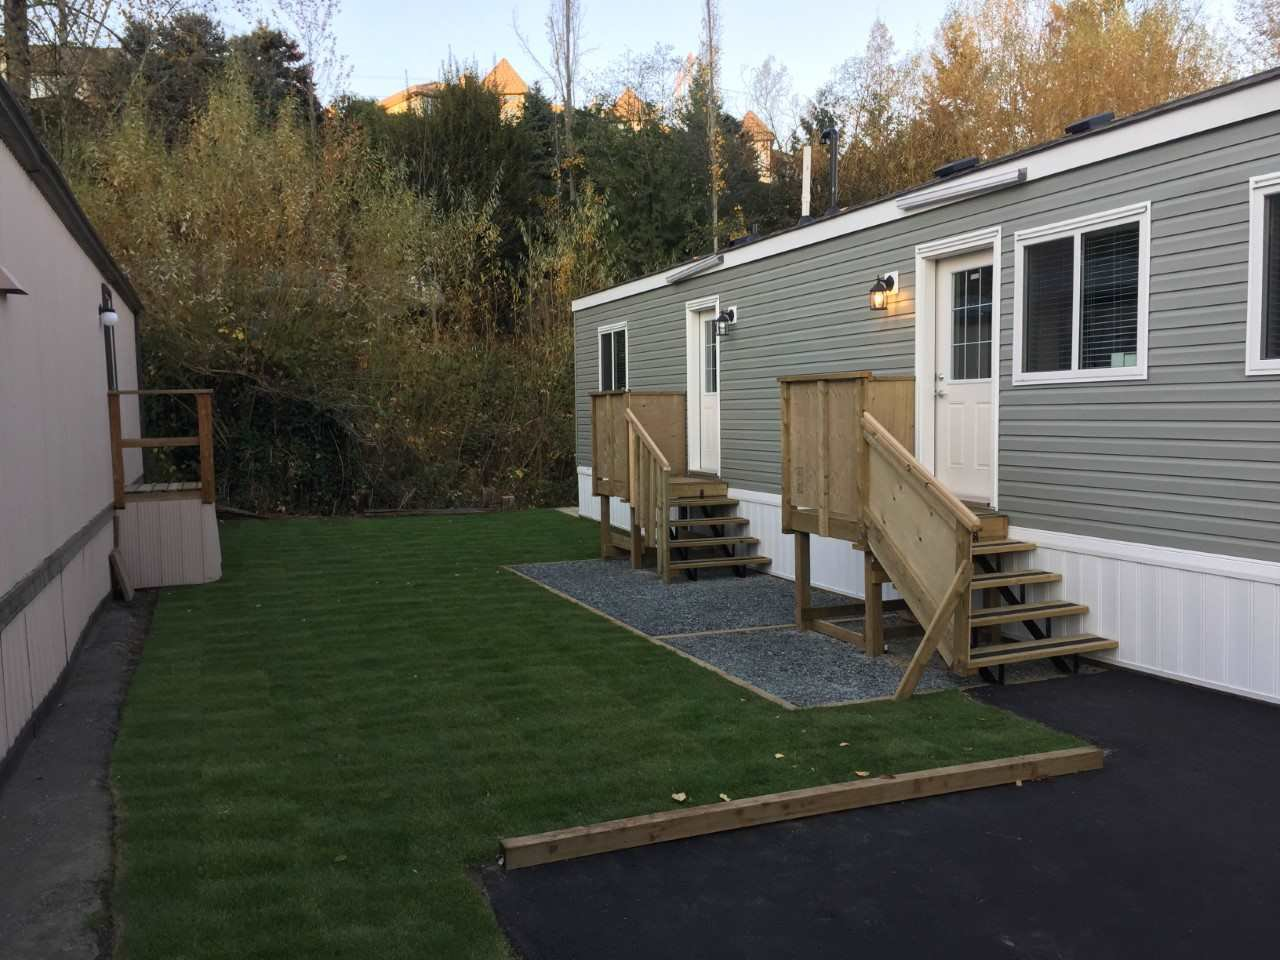 """Main Photo: 67 3300 HORN Street in Abbotsford: Central Abbotsford Manufactured Home for sale in """"Georgian Park"""" : MLS®# R2211954"""